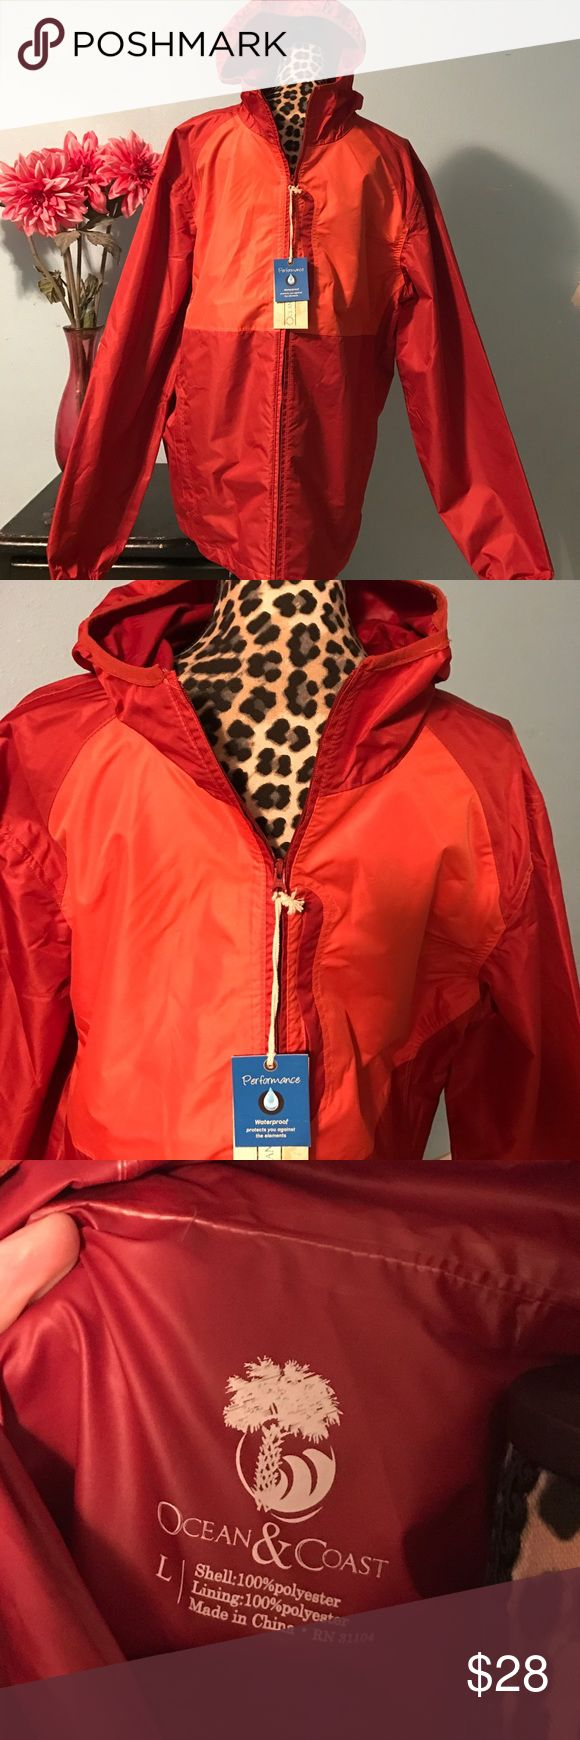 Fashionable Performance Waterproof Jacket Ocean & Coast Men's Performance Waterproof Jacket 💧💧💧 BRAND NEW WITH TAGS!!  Orange and Orangish colors ...  Purchased @ Belk Dept Store⚓️... SIZE Large OCEAN & COAST Jackets & Coats Performance Jackets